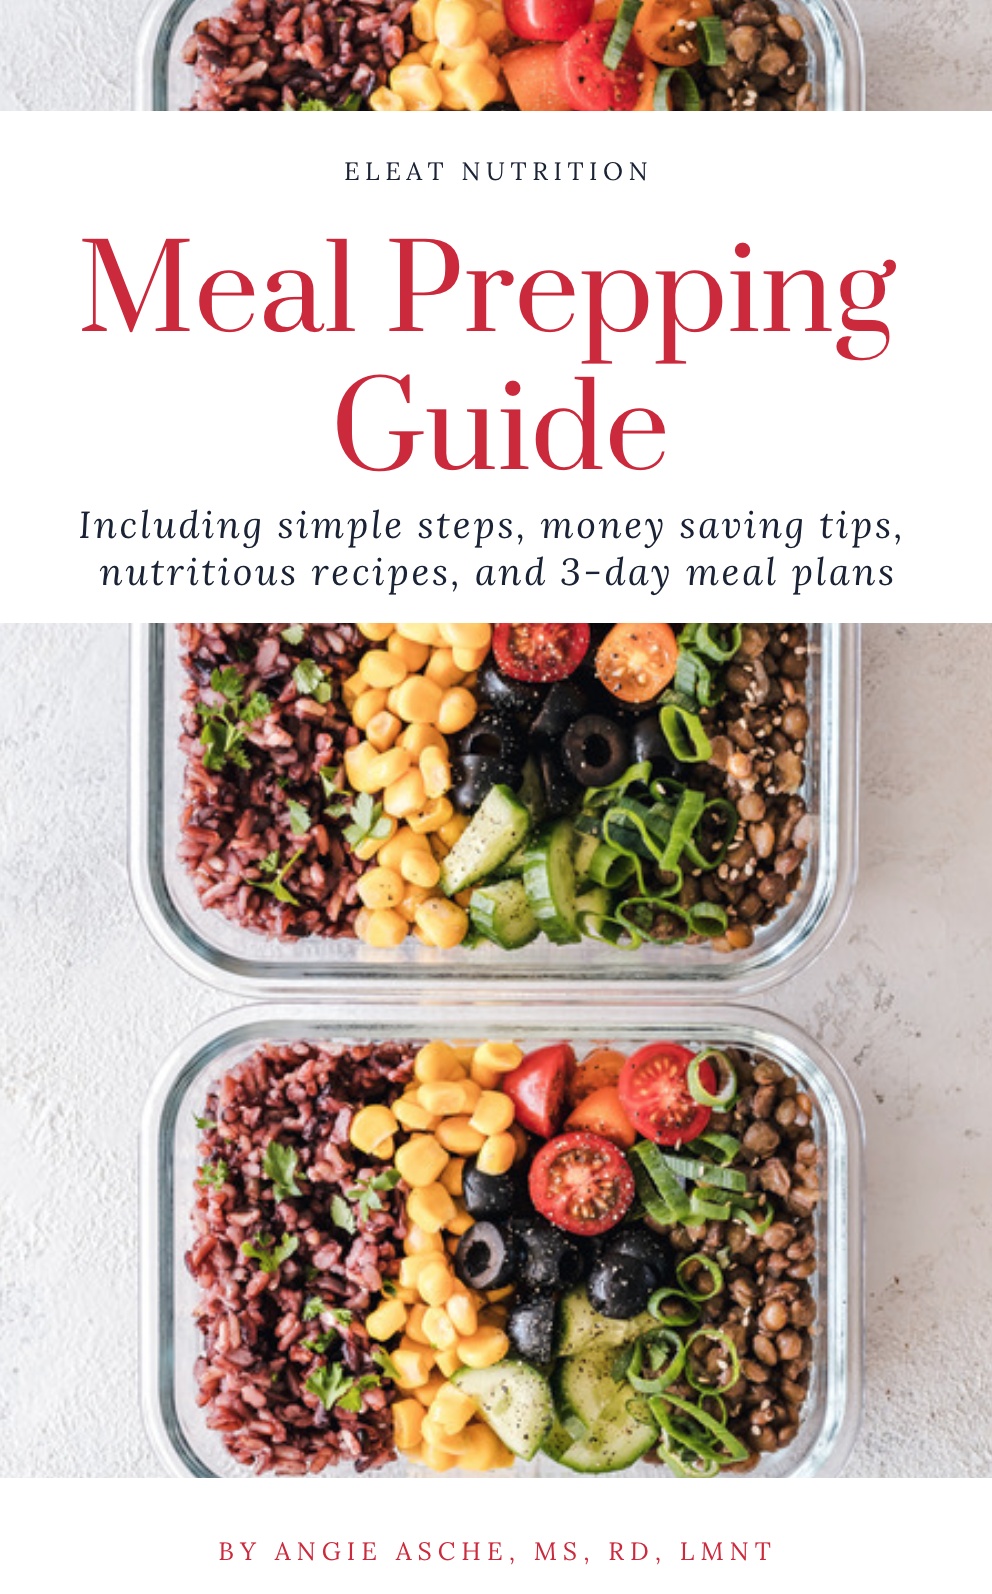 Meal Prepping Guide Eleat Sports Nutrition